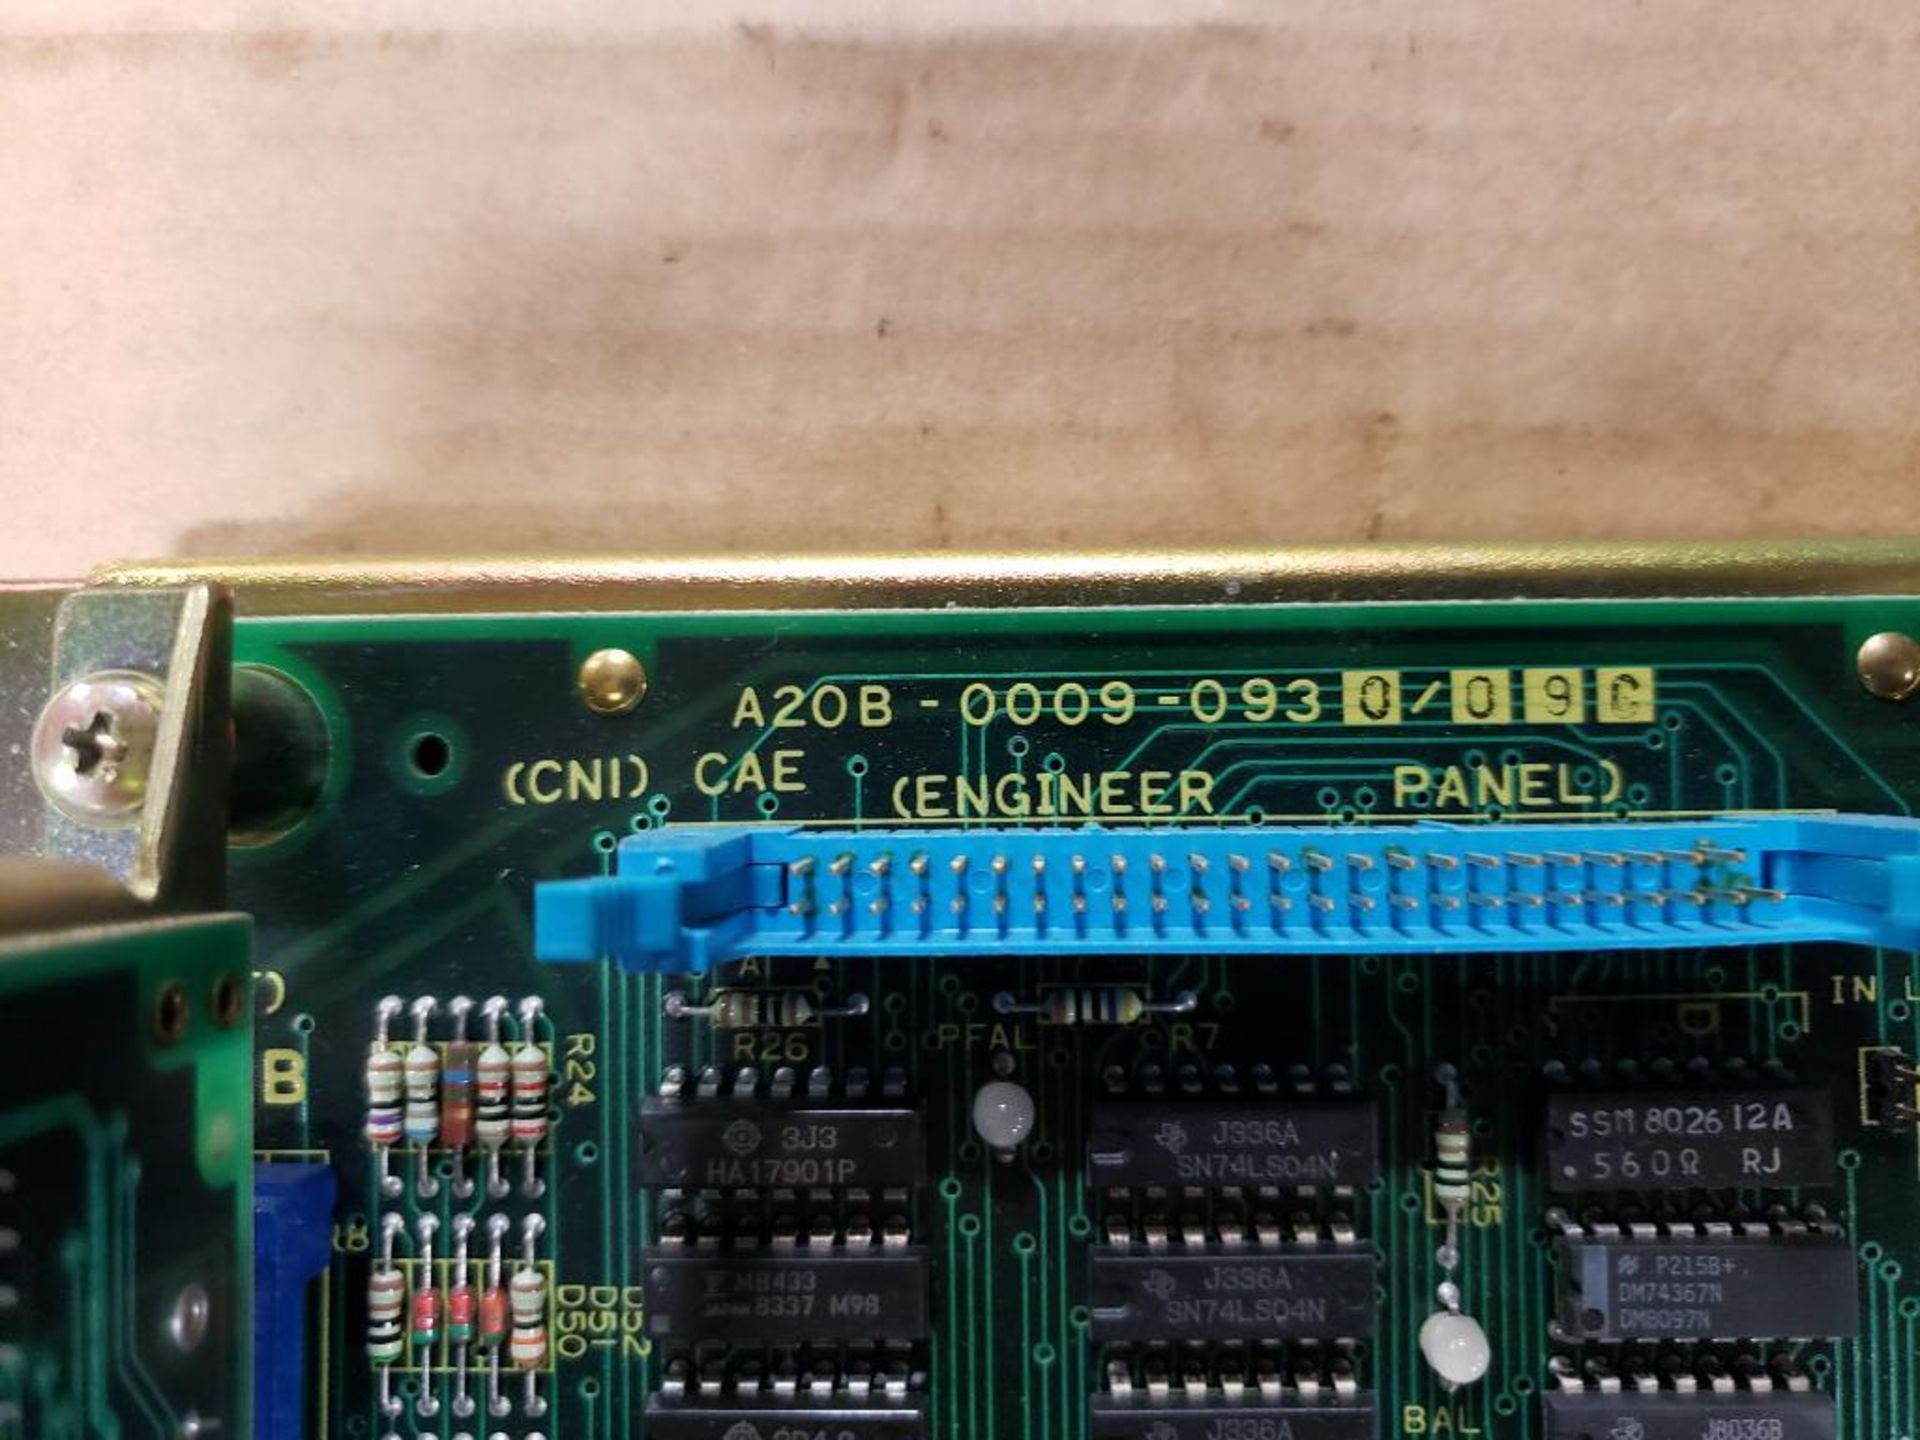 Fanuc A20B-0009-0930/09C Motherboard. - Image 18 of 20